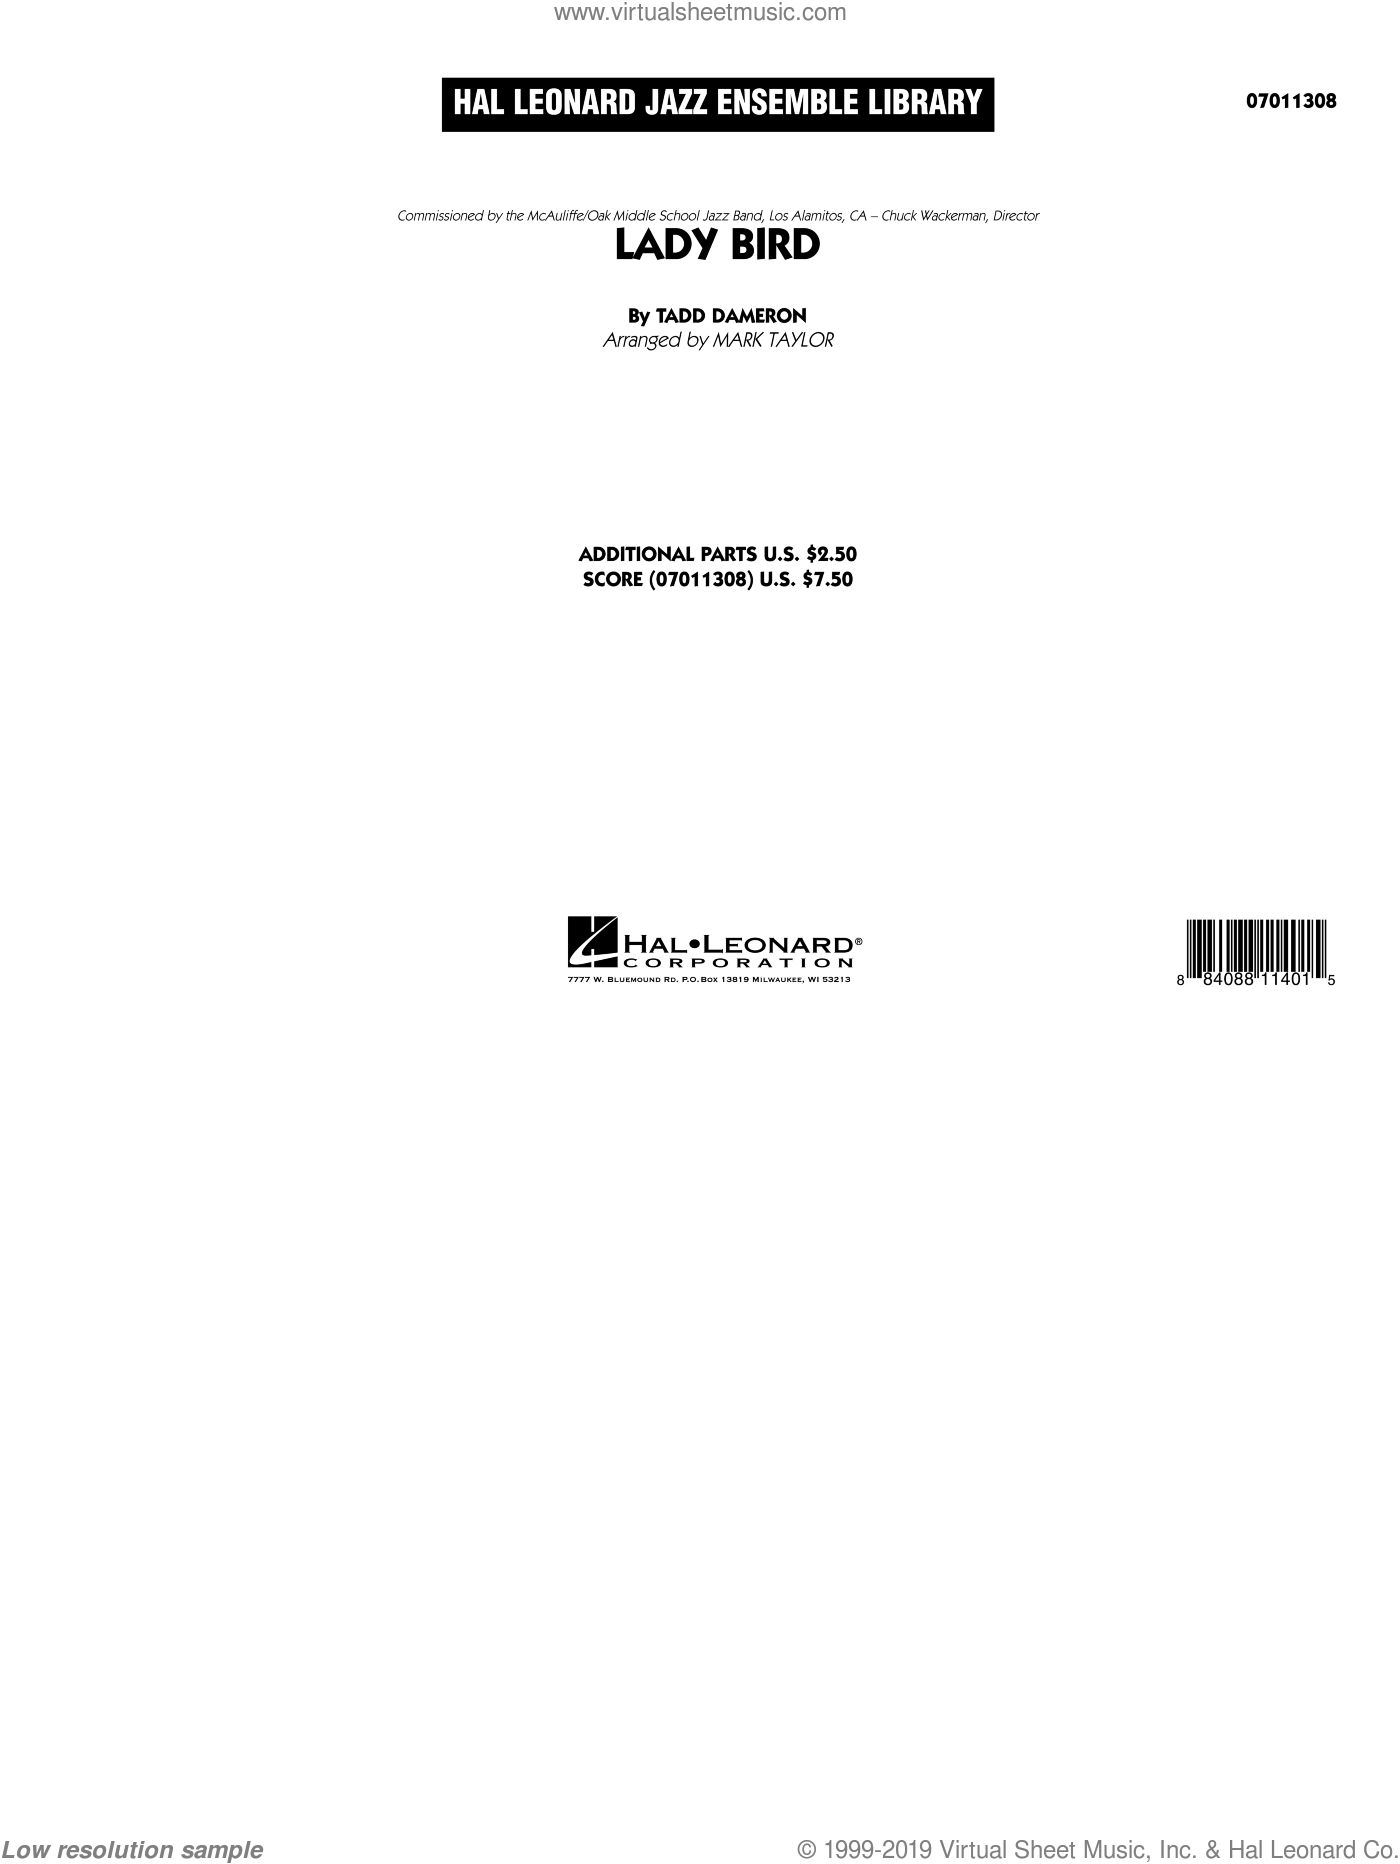 Lady Bird (COMPLETE) sheet music for jazz band by Tadd Dameron